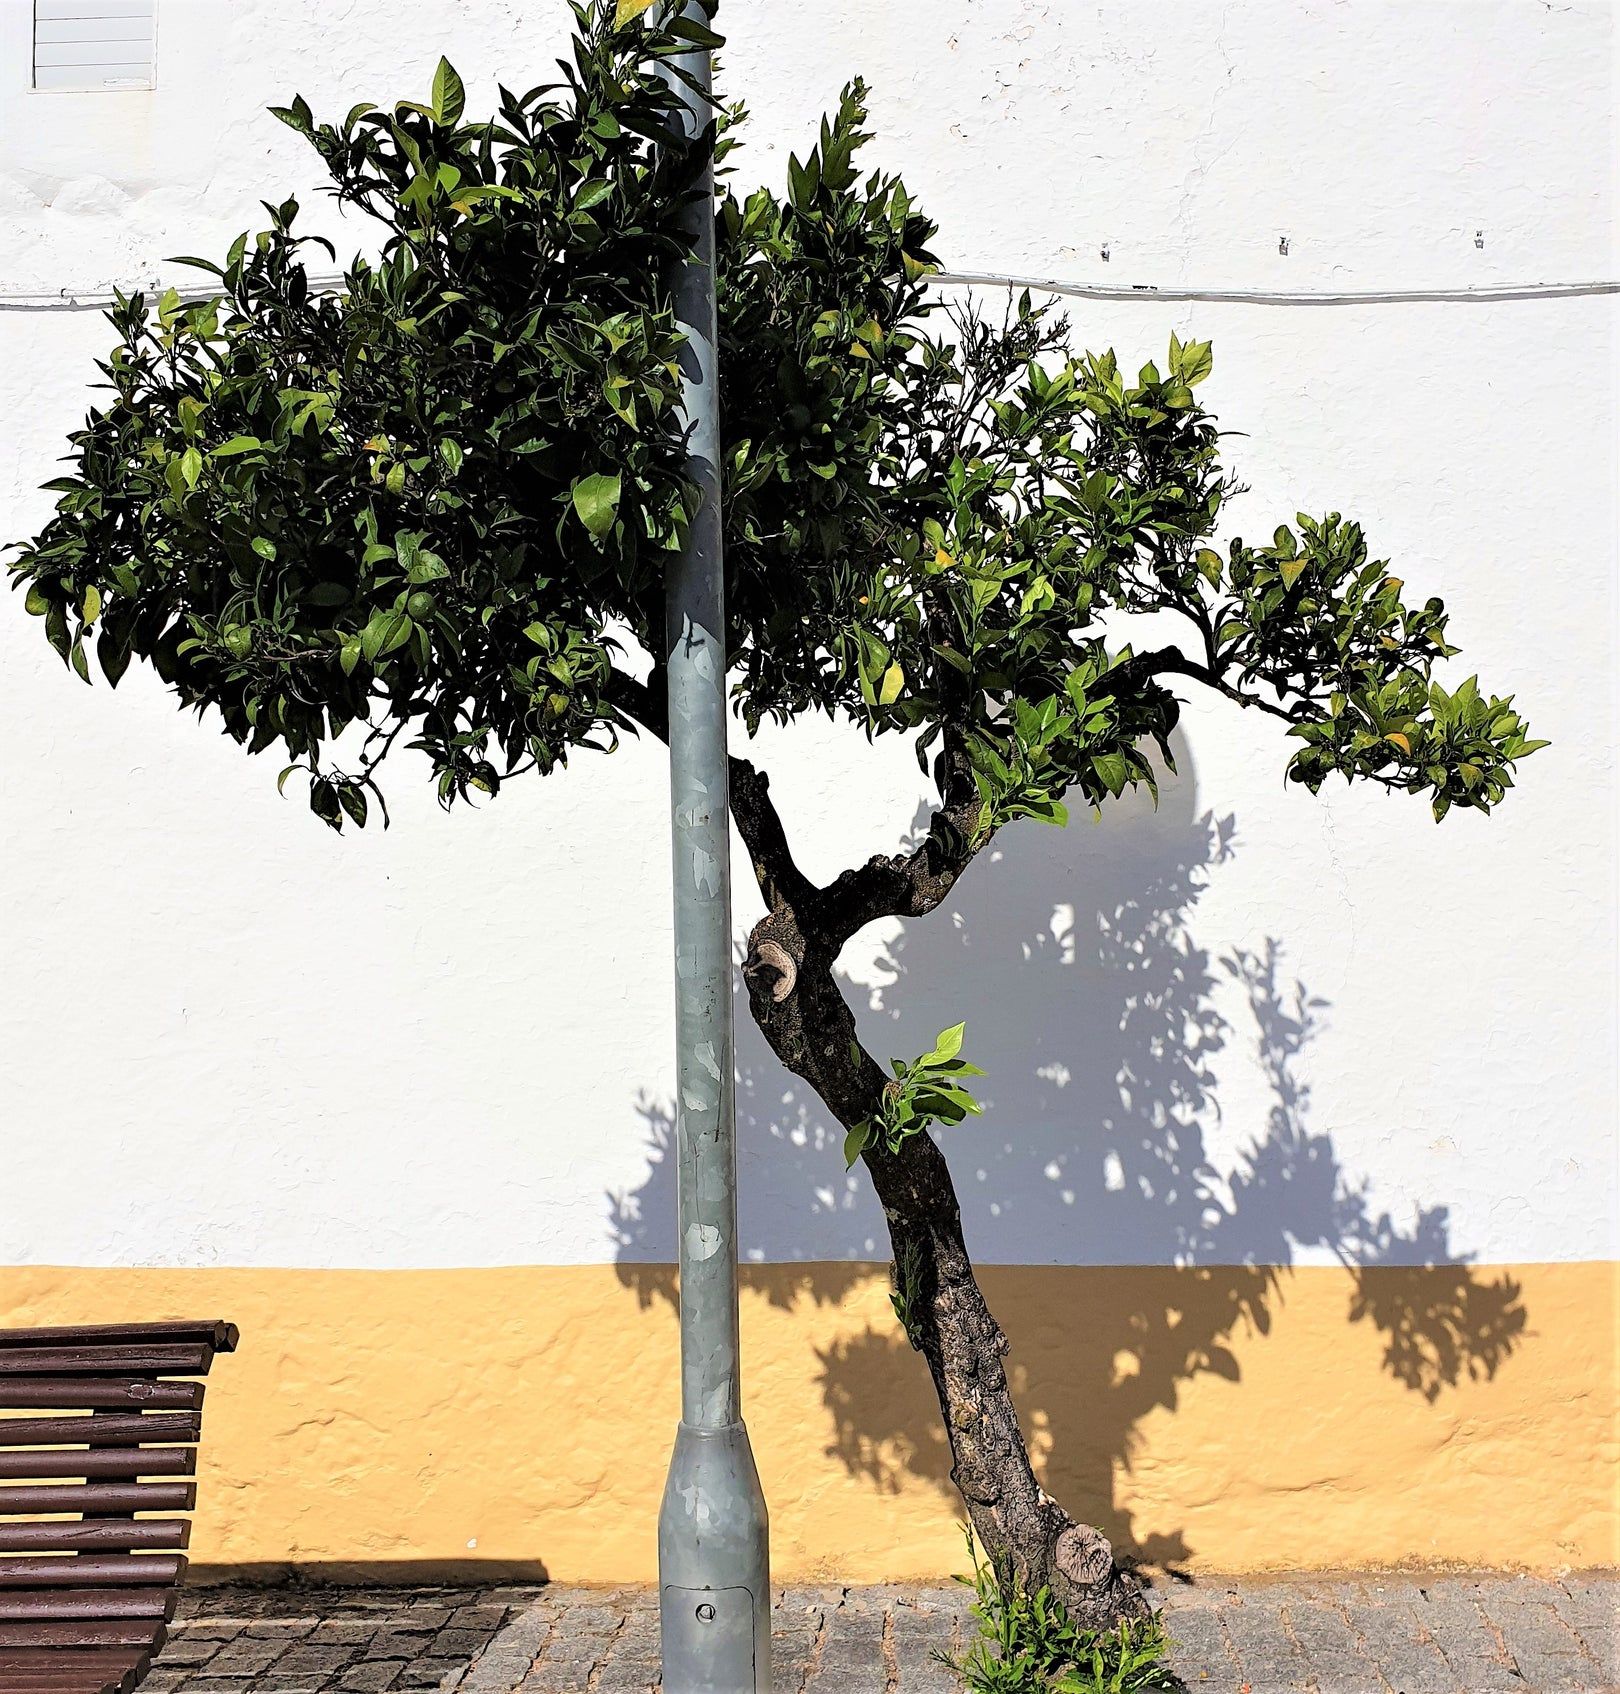 a green, leafy tree growing towards a street lamp casting a shadow on a sunlit whitewashed and painted orangewall kuloko